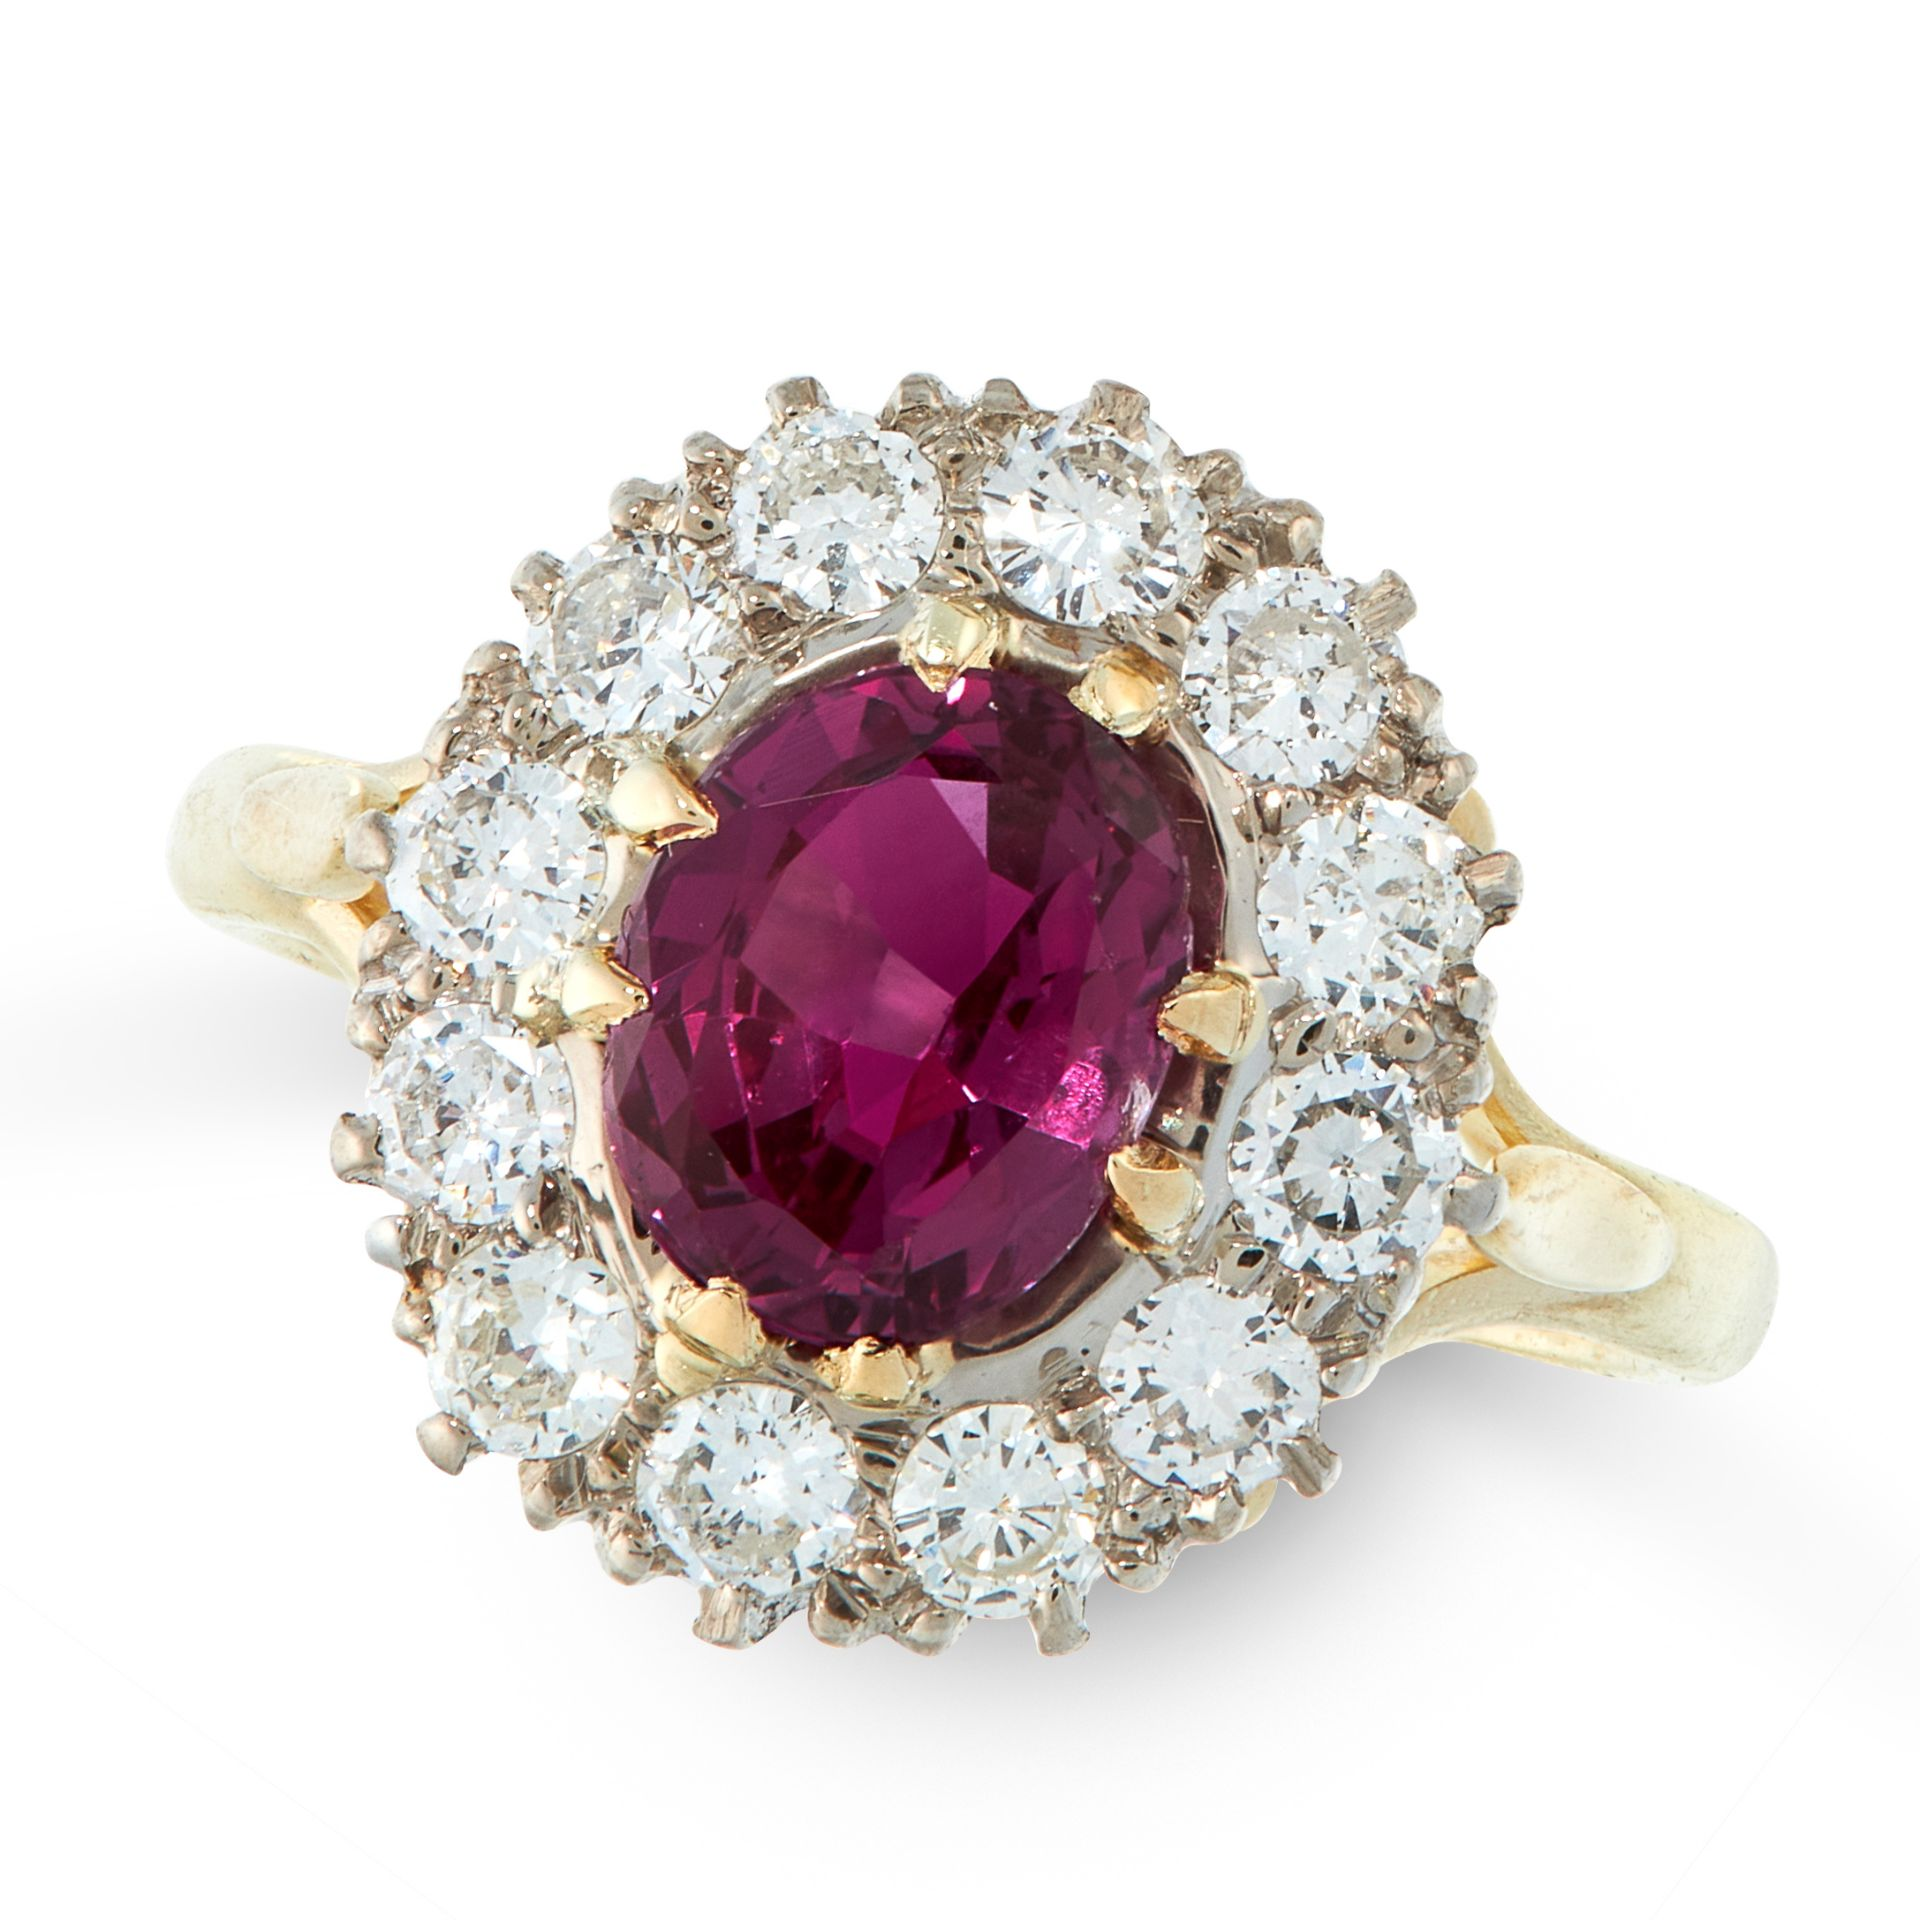 AN UNHEATED RUBY AND DIAMOND DRESS RING in 18ct yellow gold, set with a cushion cut ruby of 1.84